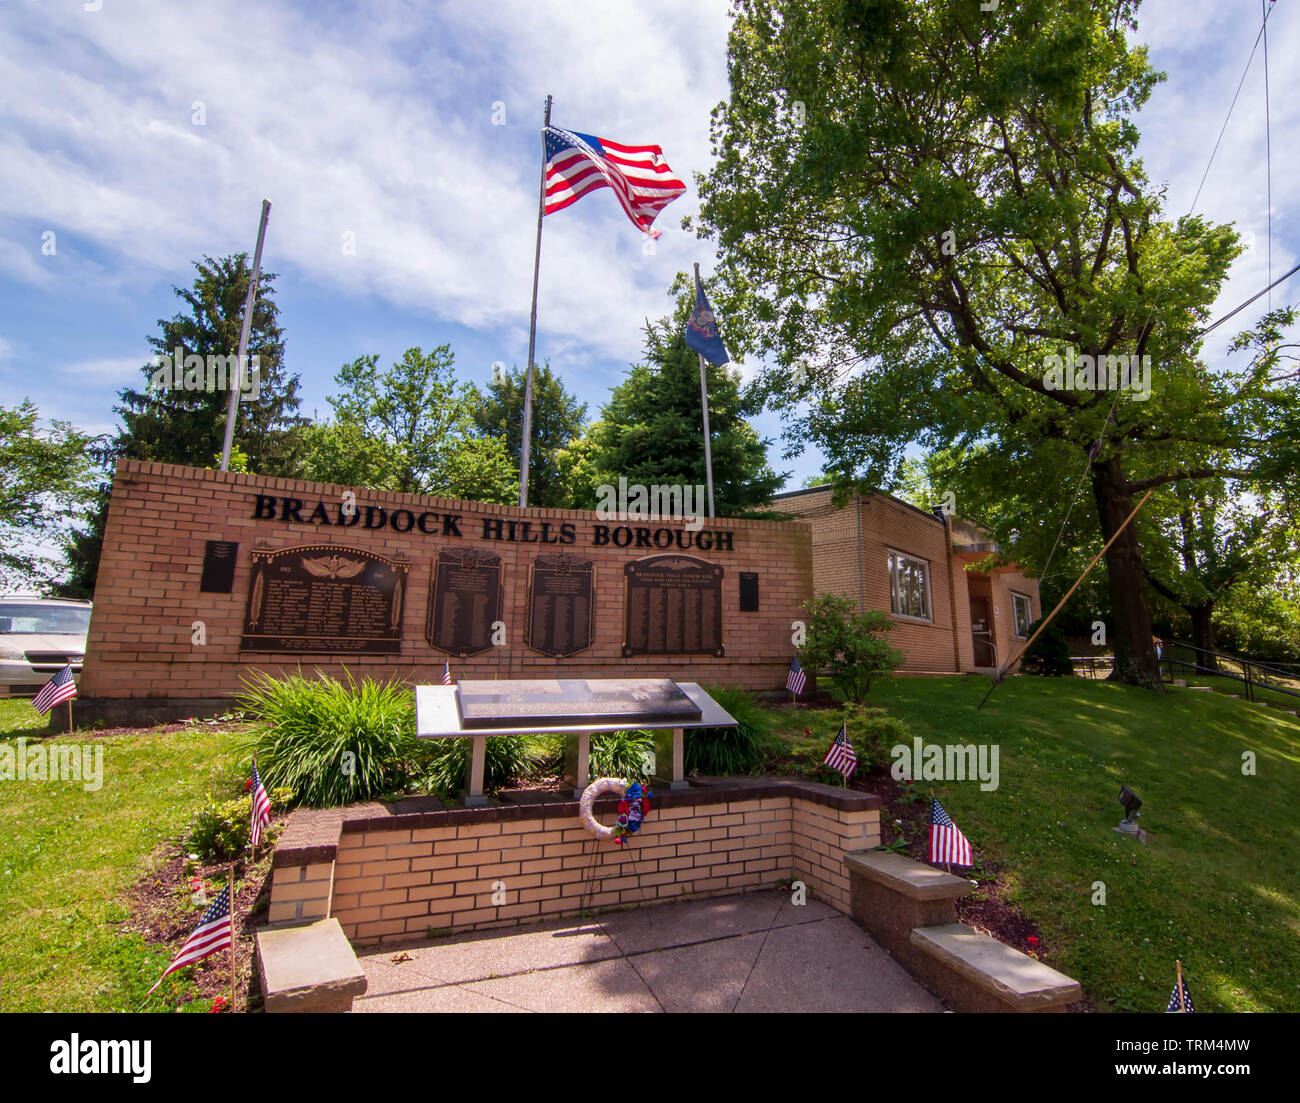 The Braddock Hills Borough War Memorial in front of the old borough building on a spring day in Braddock Hills, Pennsylvania, USA - Stock Image